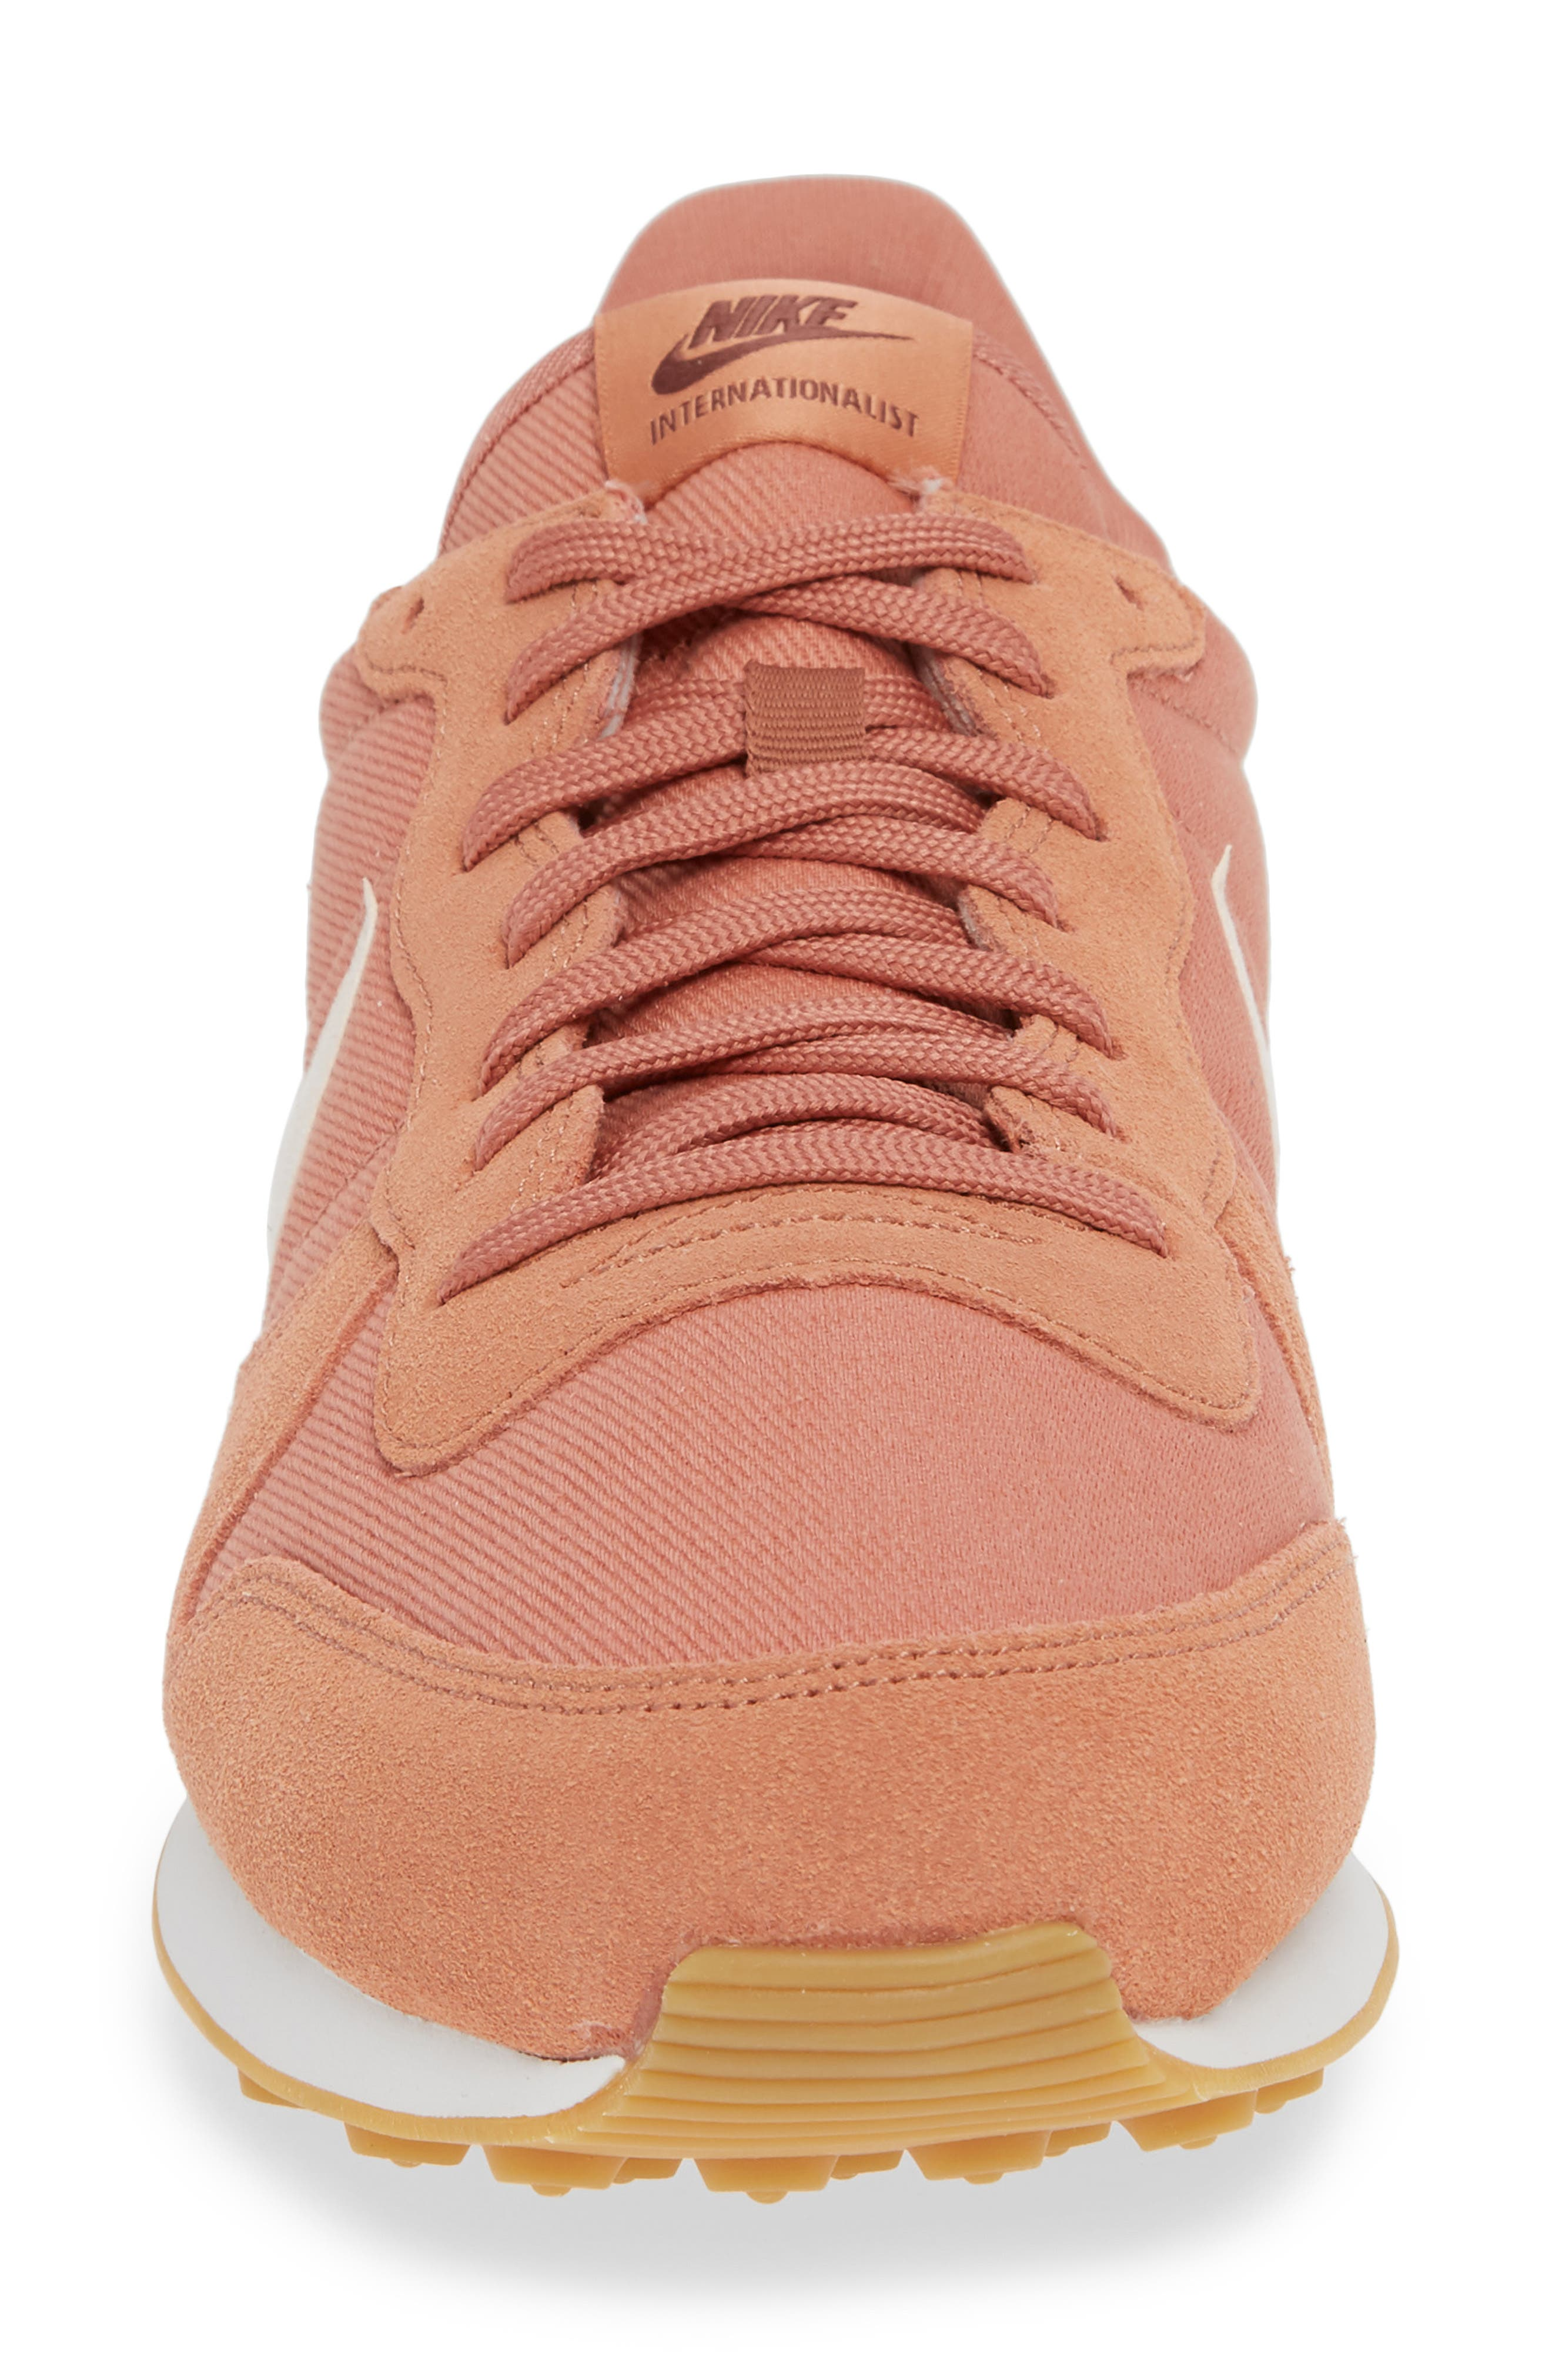 'Internationalist' Sneaker,                             Alternate thumbnail 4, color,                             950